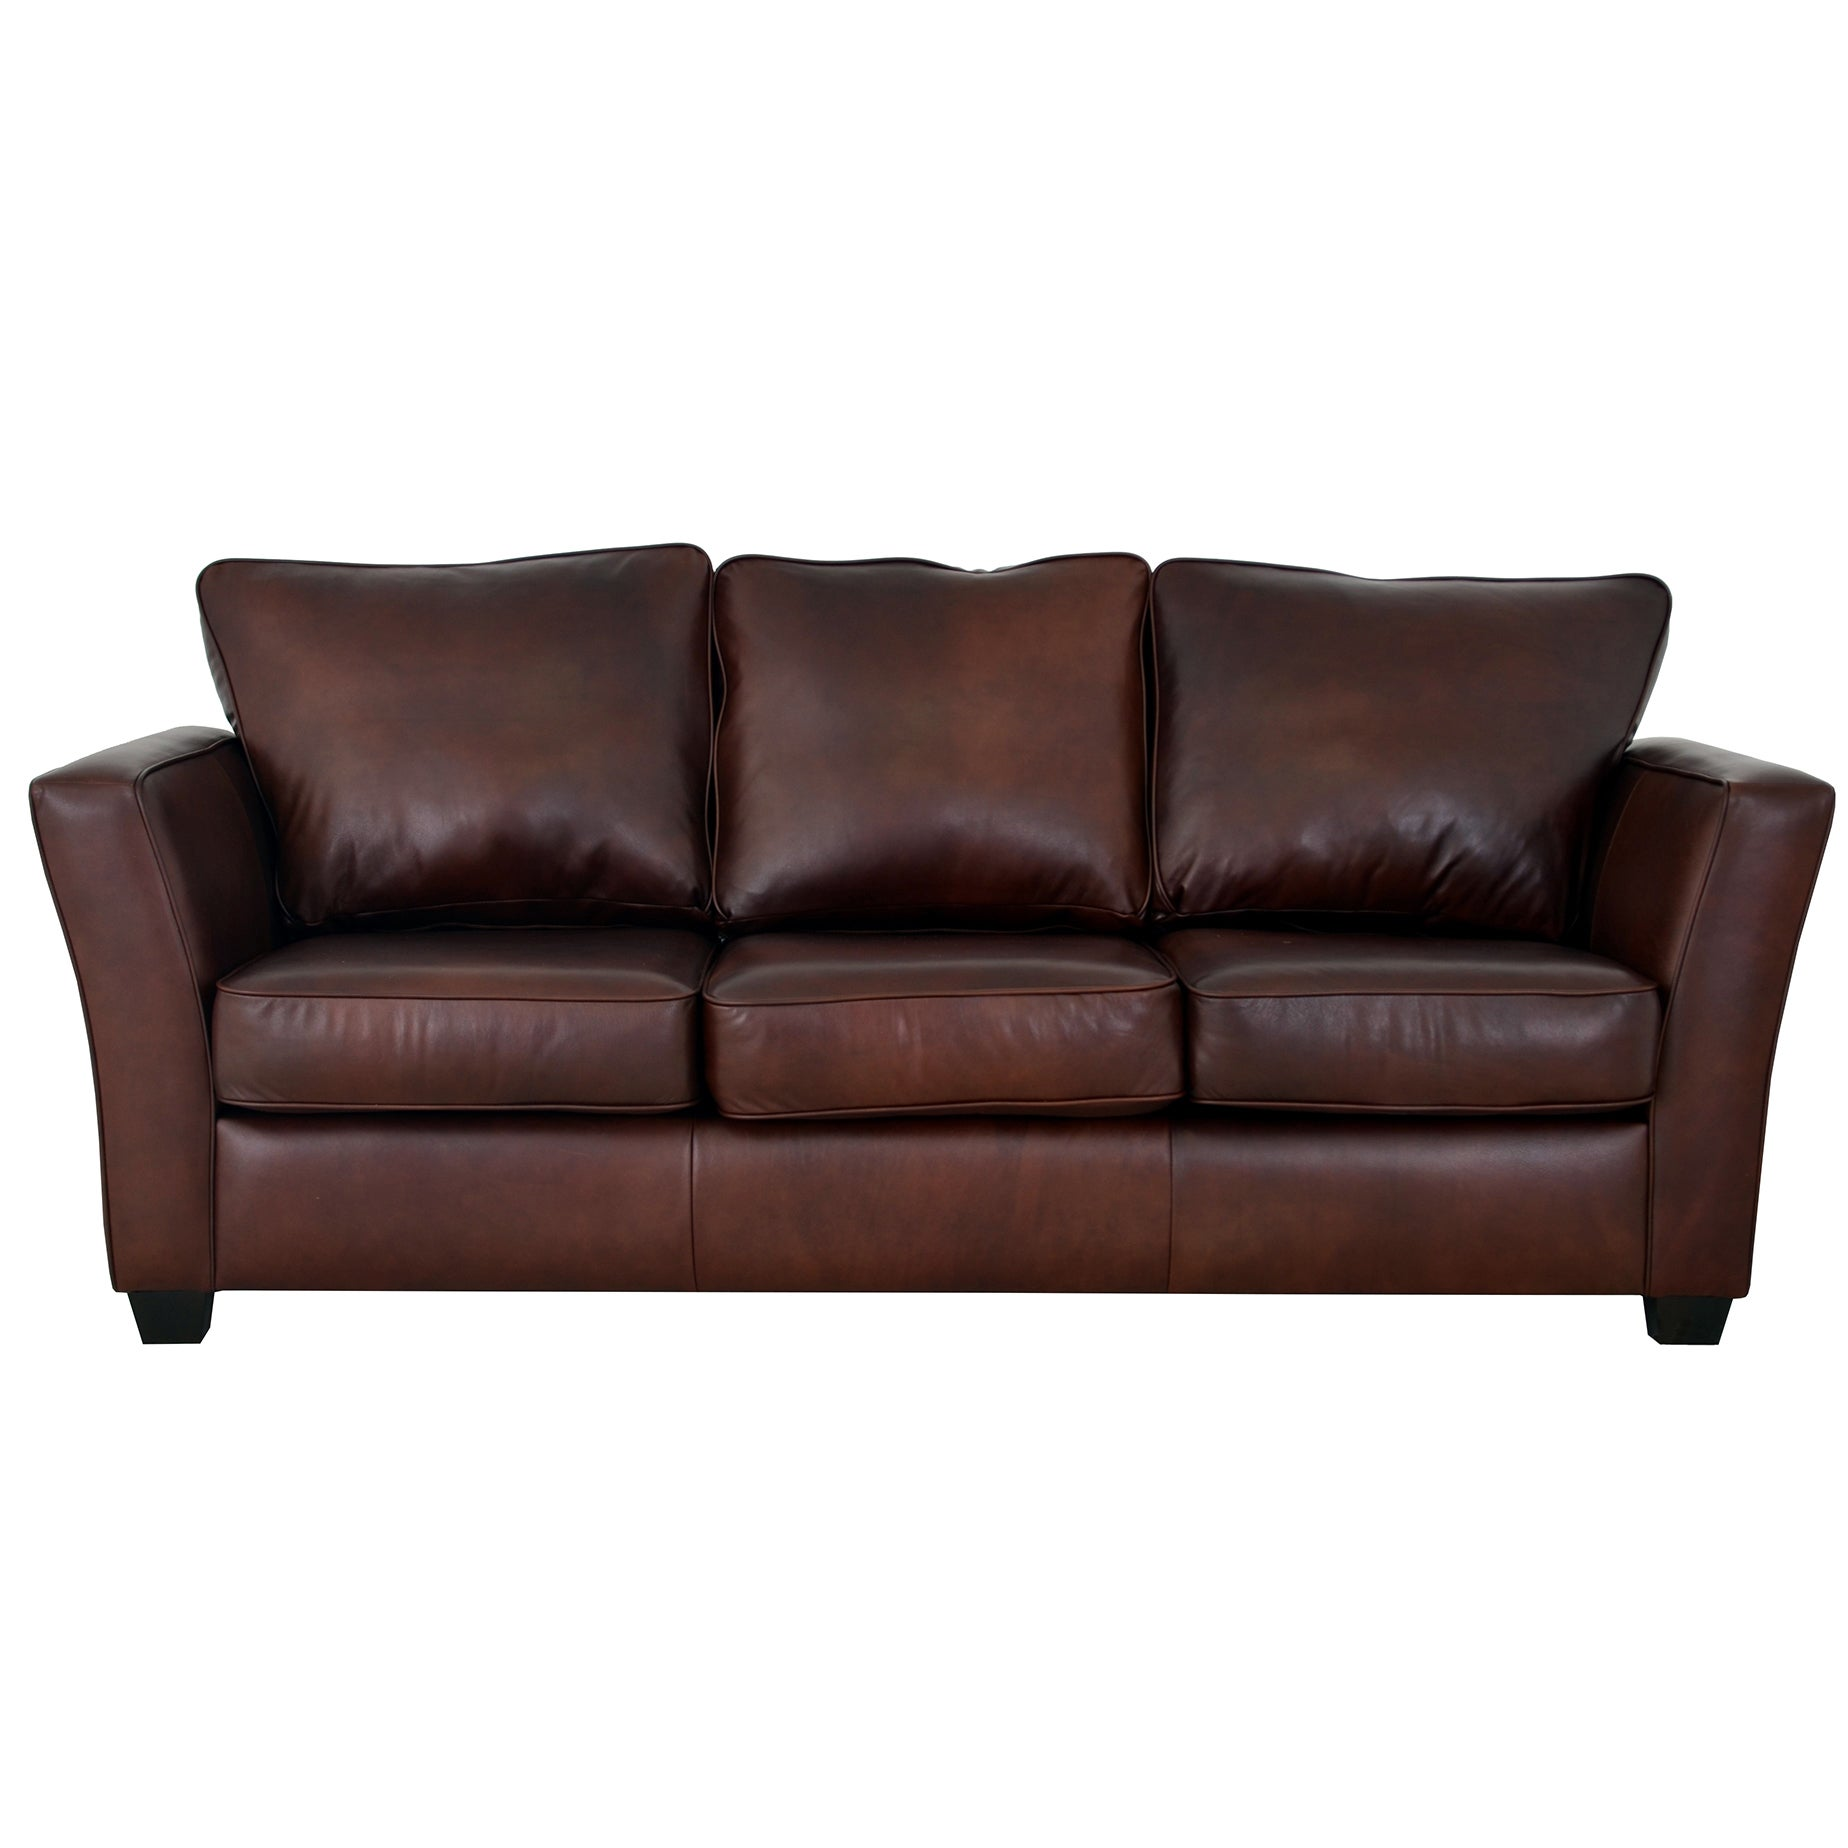 Shop Made To Order Bridgeport Genuine Top Grain Leather Sofa On